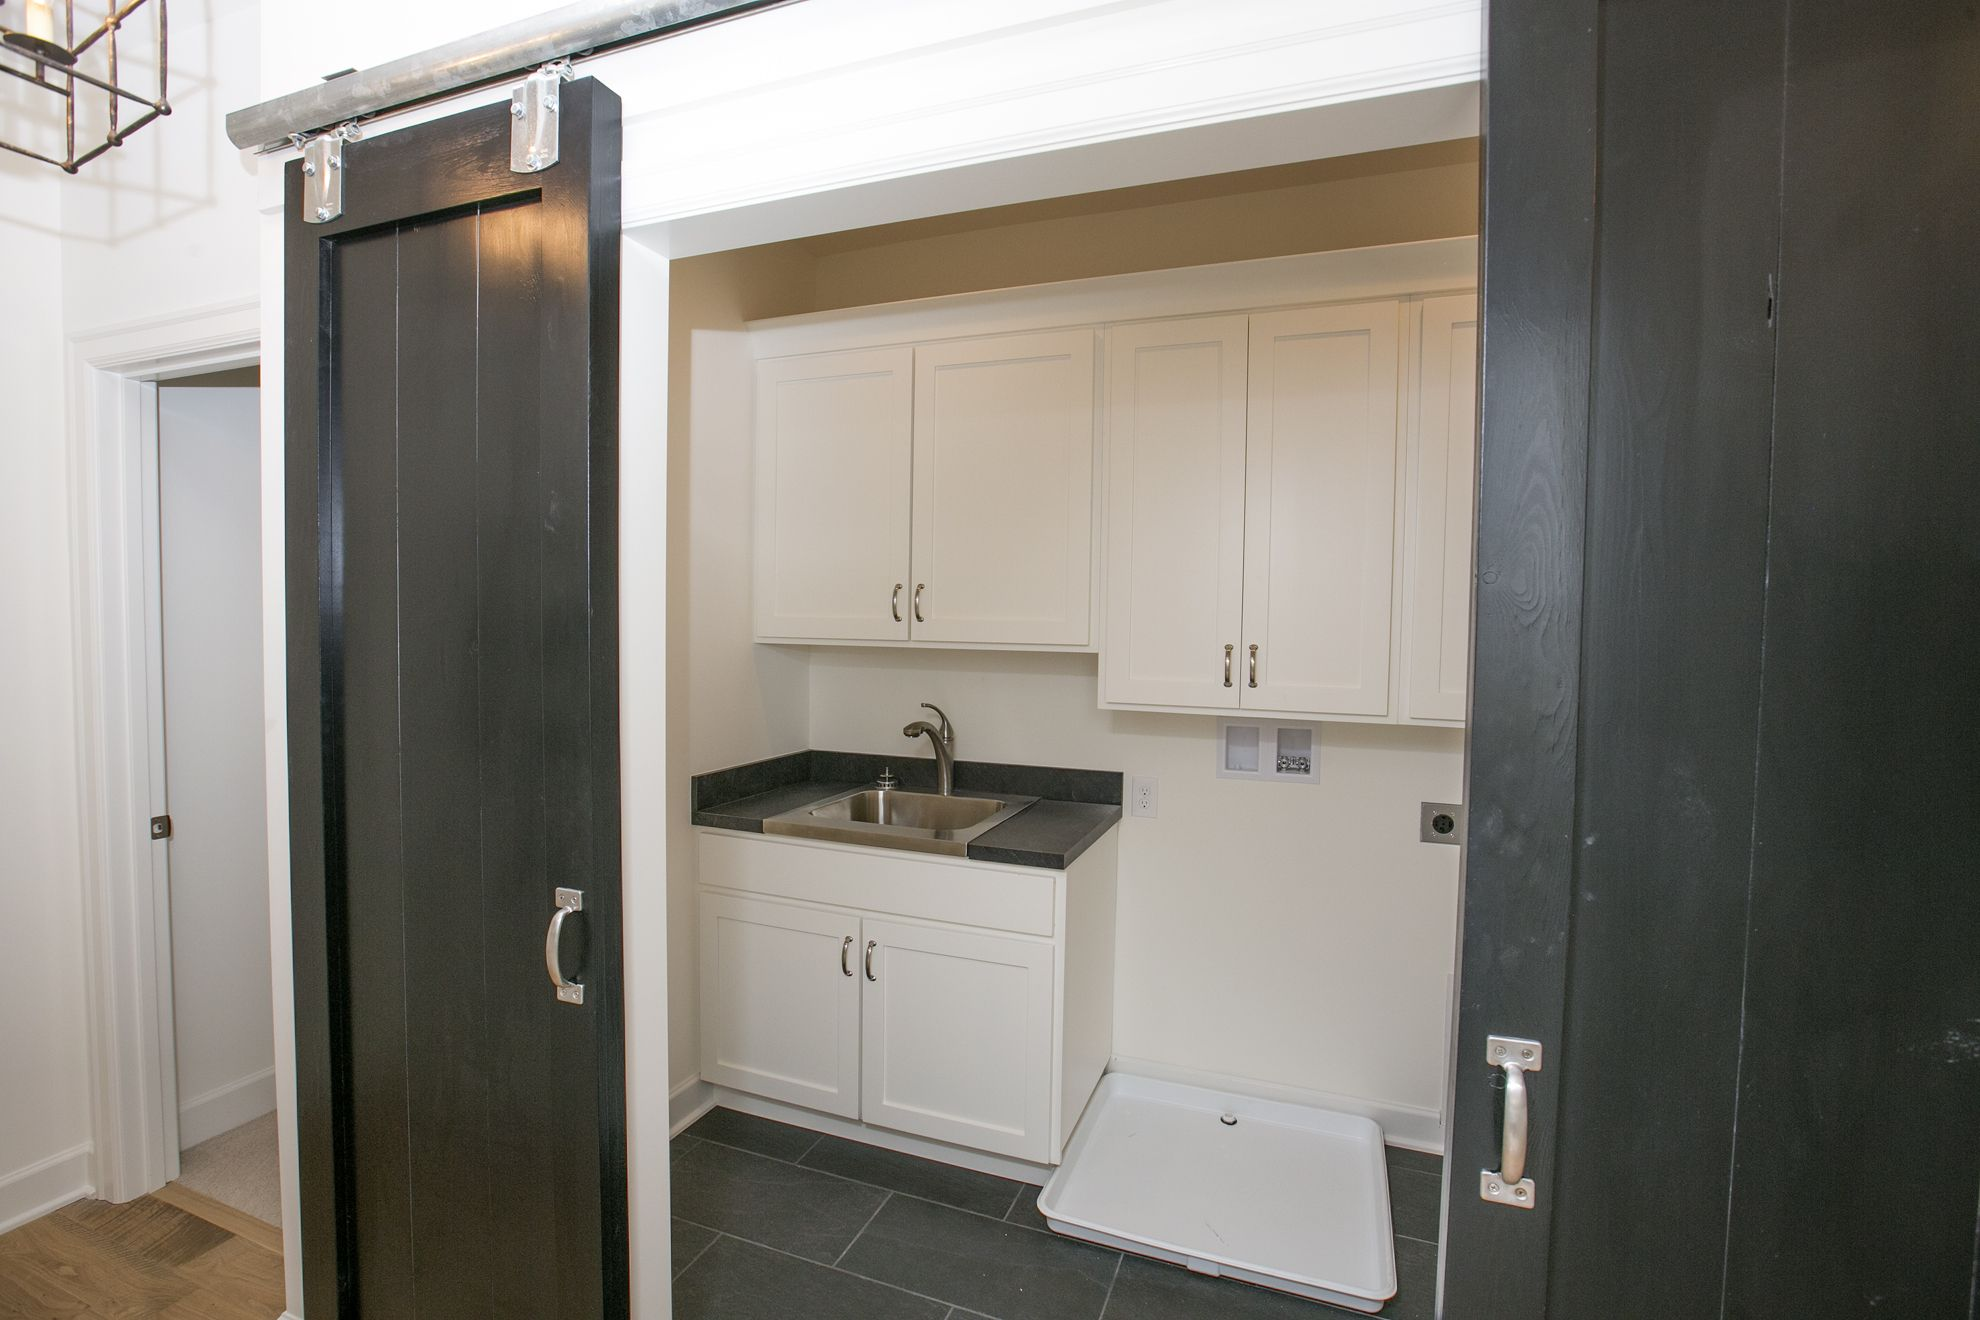 The laundry room is built into the hallway in the New